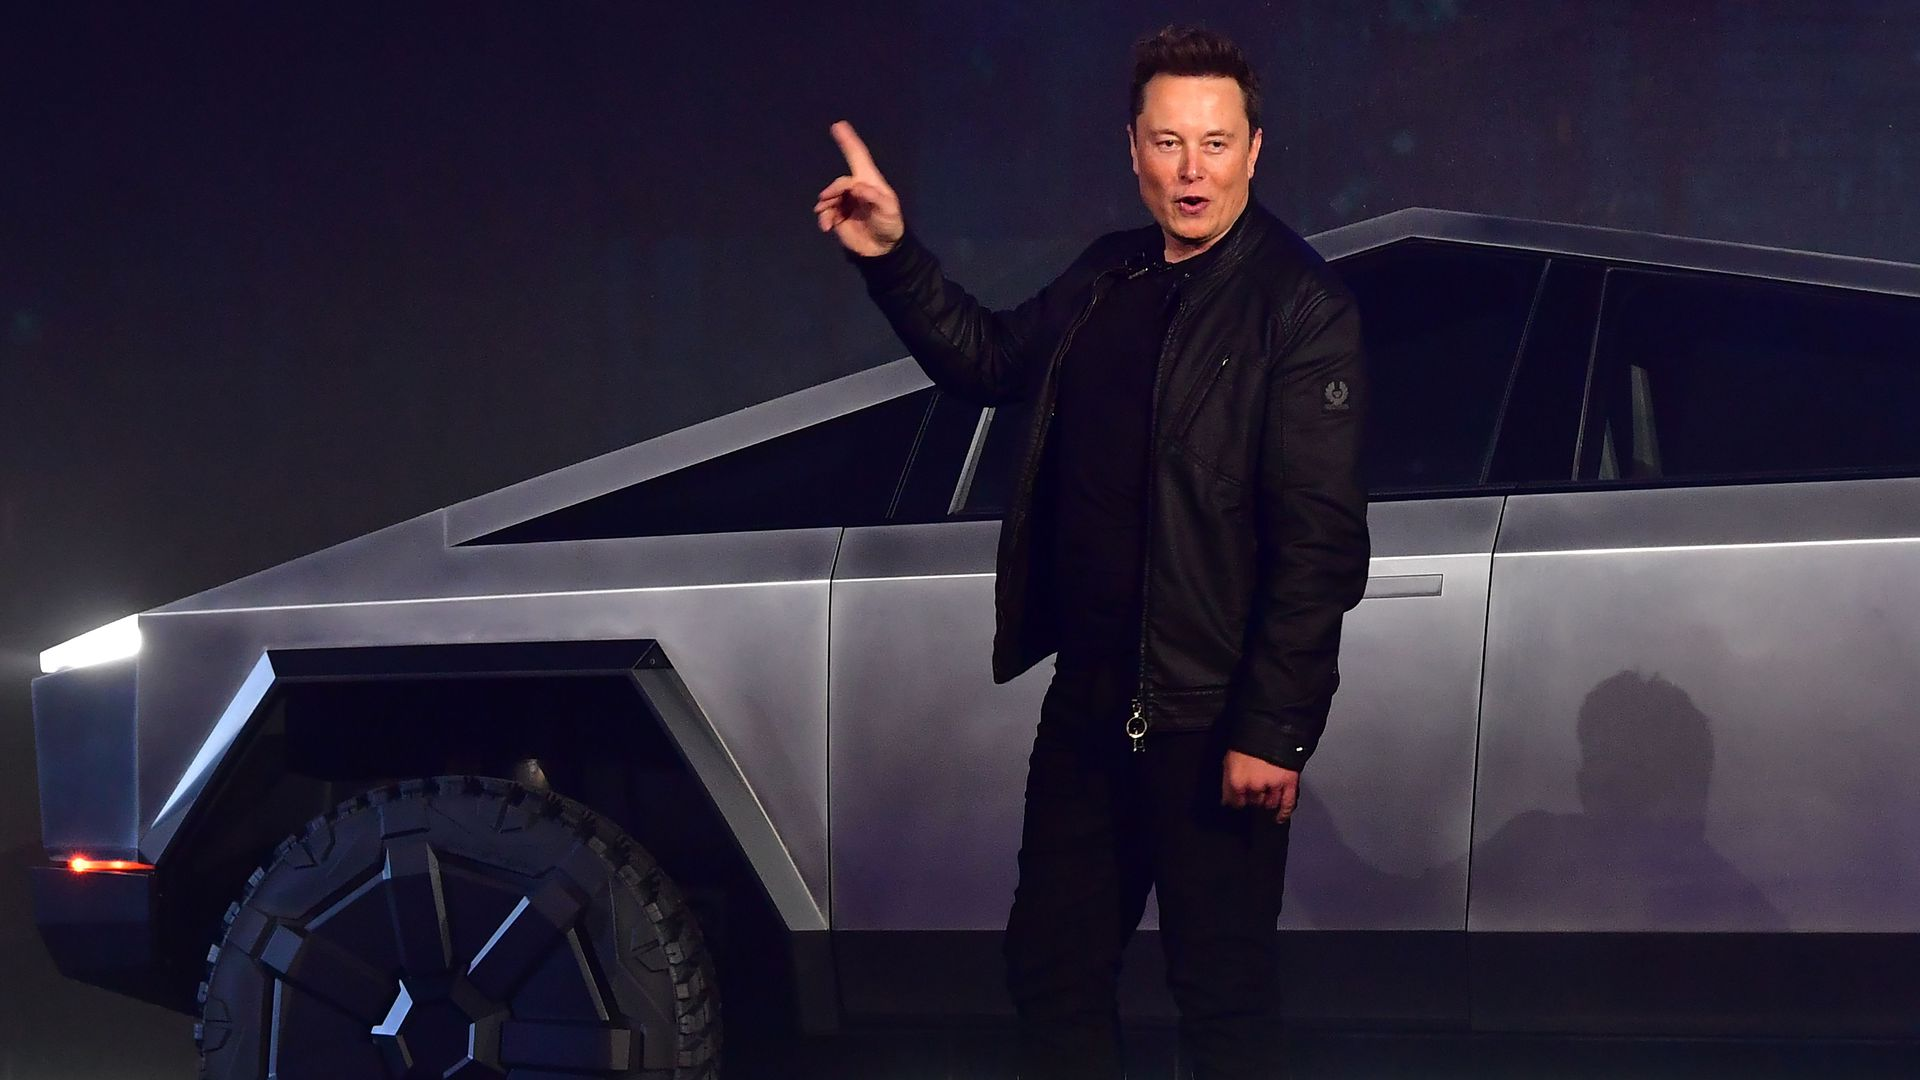 Tesla co-founder and CEO Elon Musk gestures while introducing the newly unveiled all-electric battery-powered Tesla Cybertruck